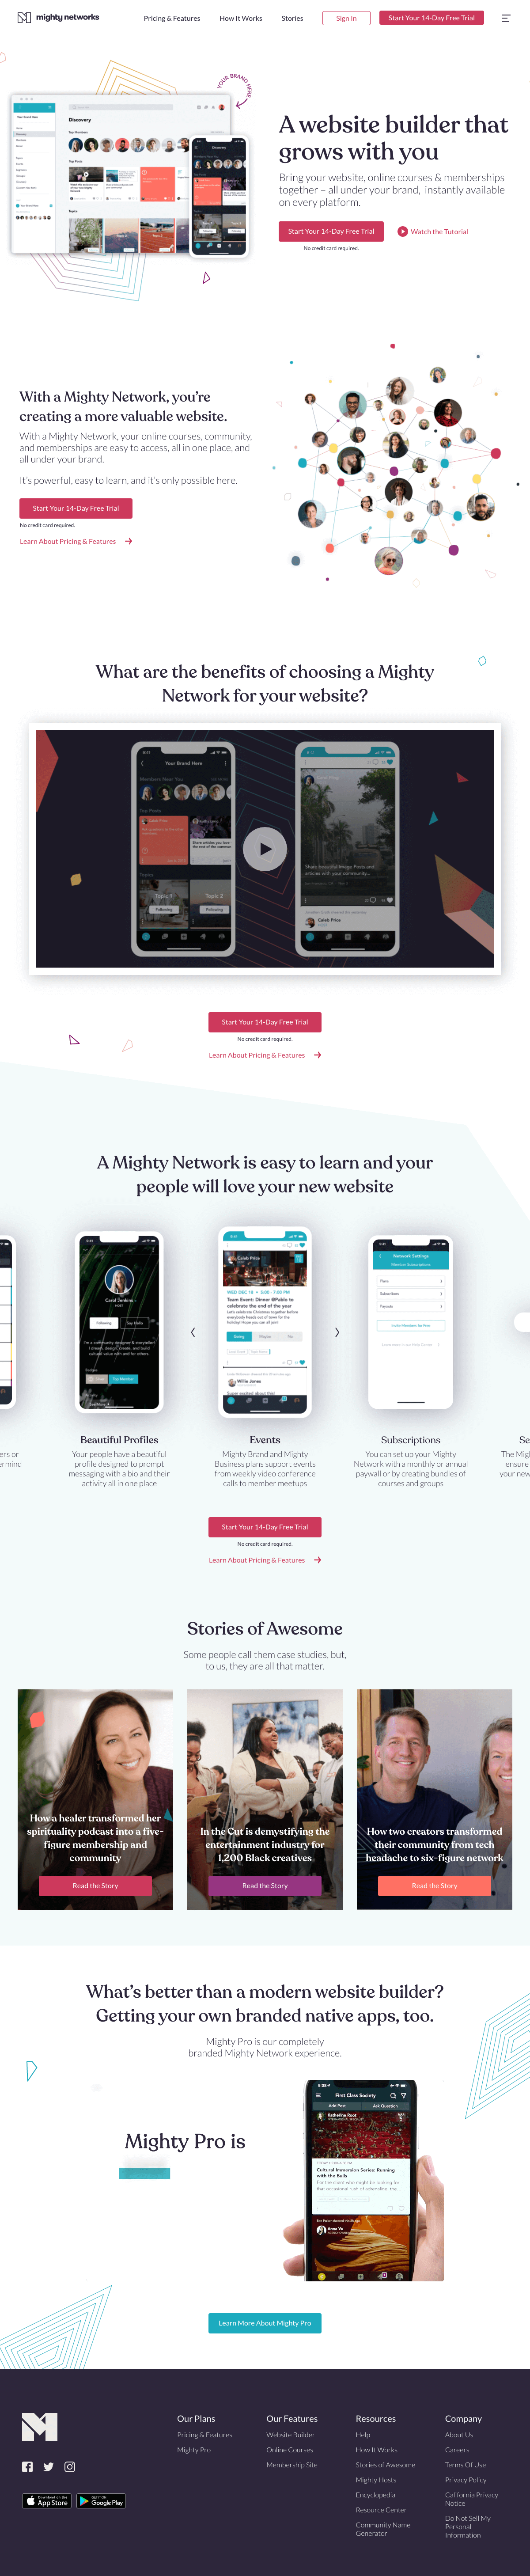 Mighty Networks – Features page